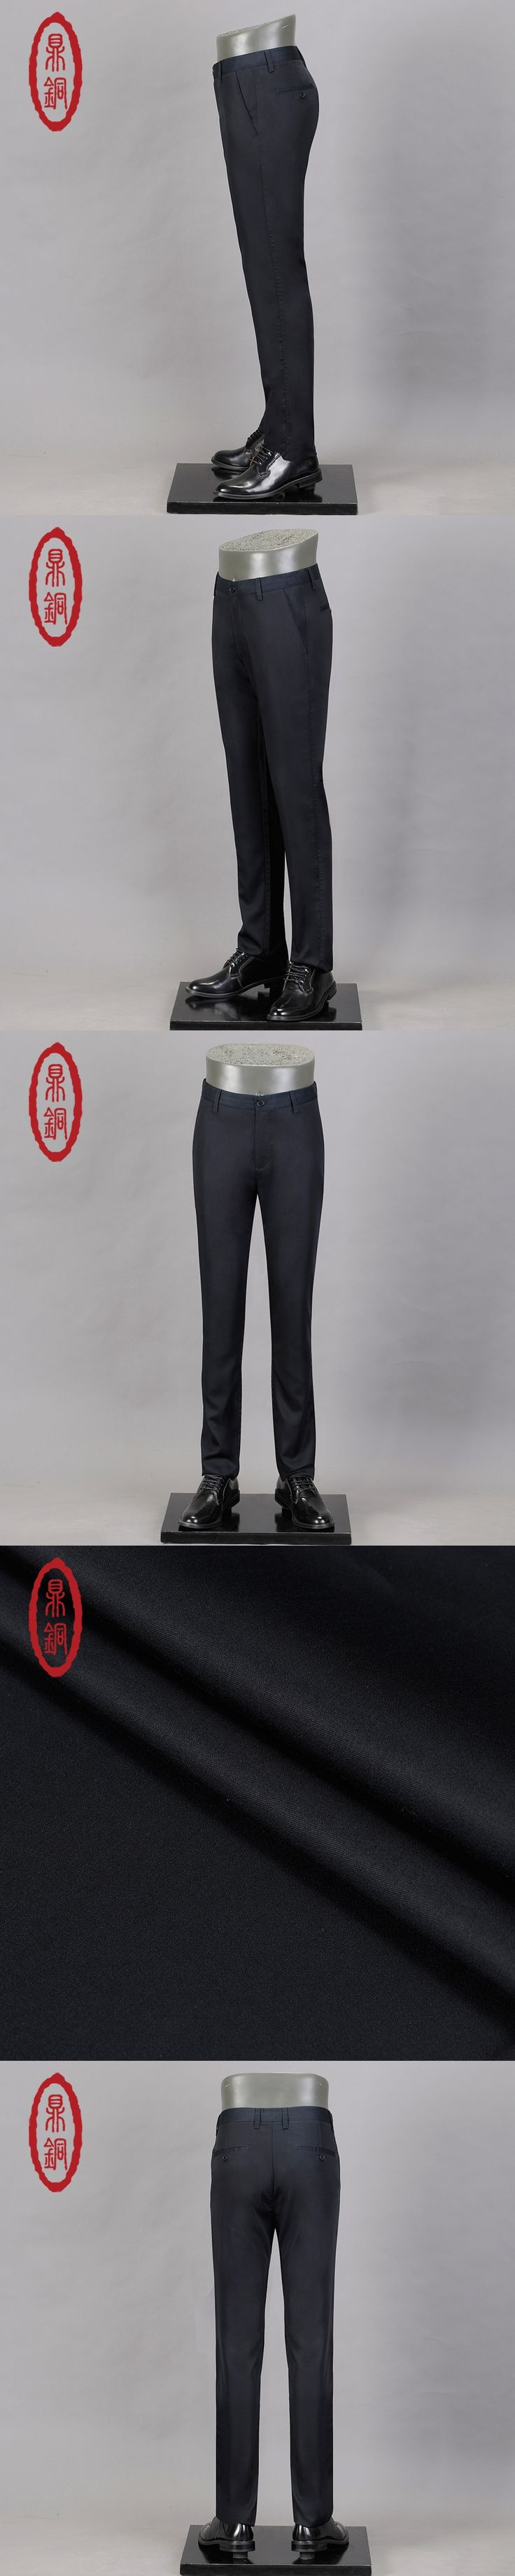 DINGTONG Men's Comfort Lyocell Casual Pant Lightweight Straight Zip Front Straight Fit Trousers Cool Summer Thin Pant Top Brand